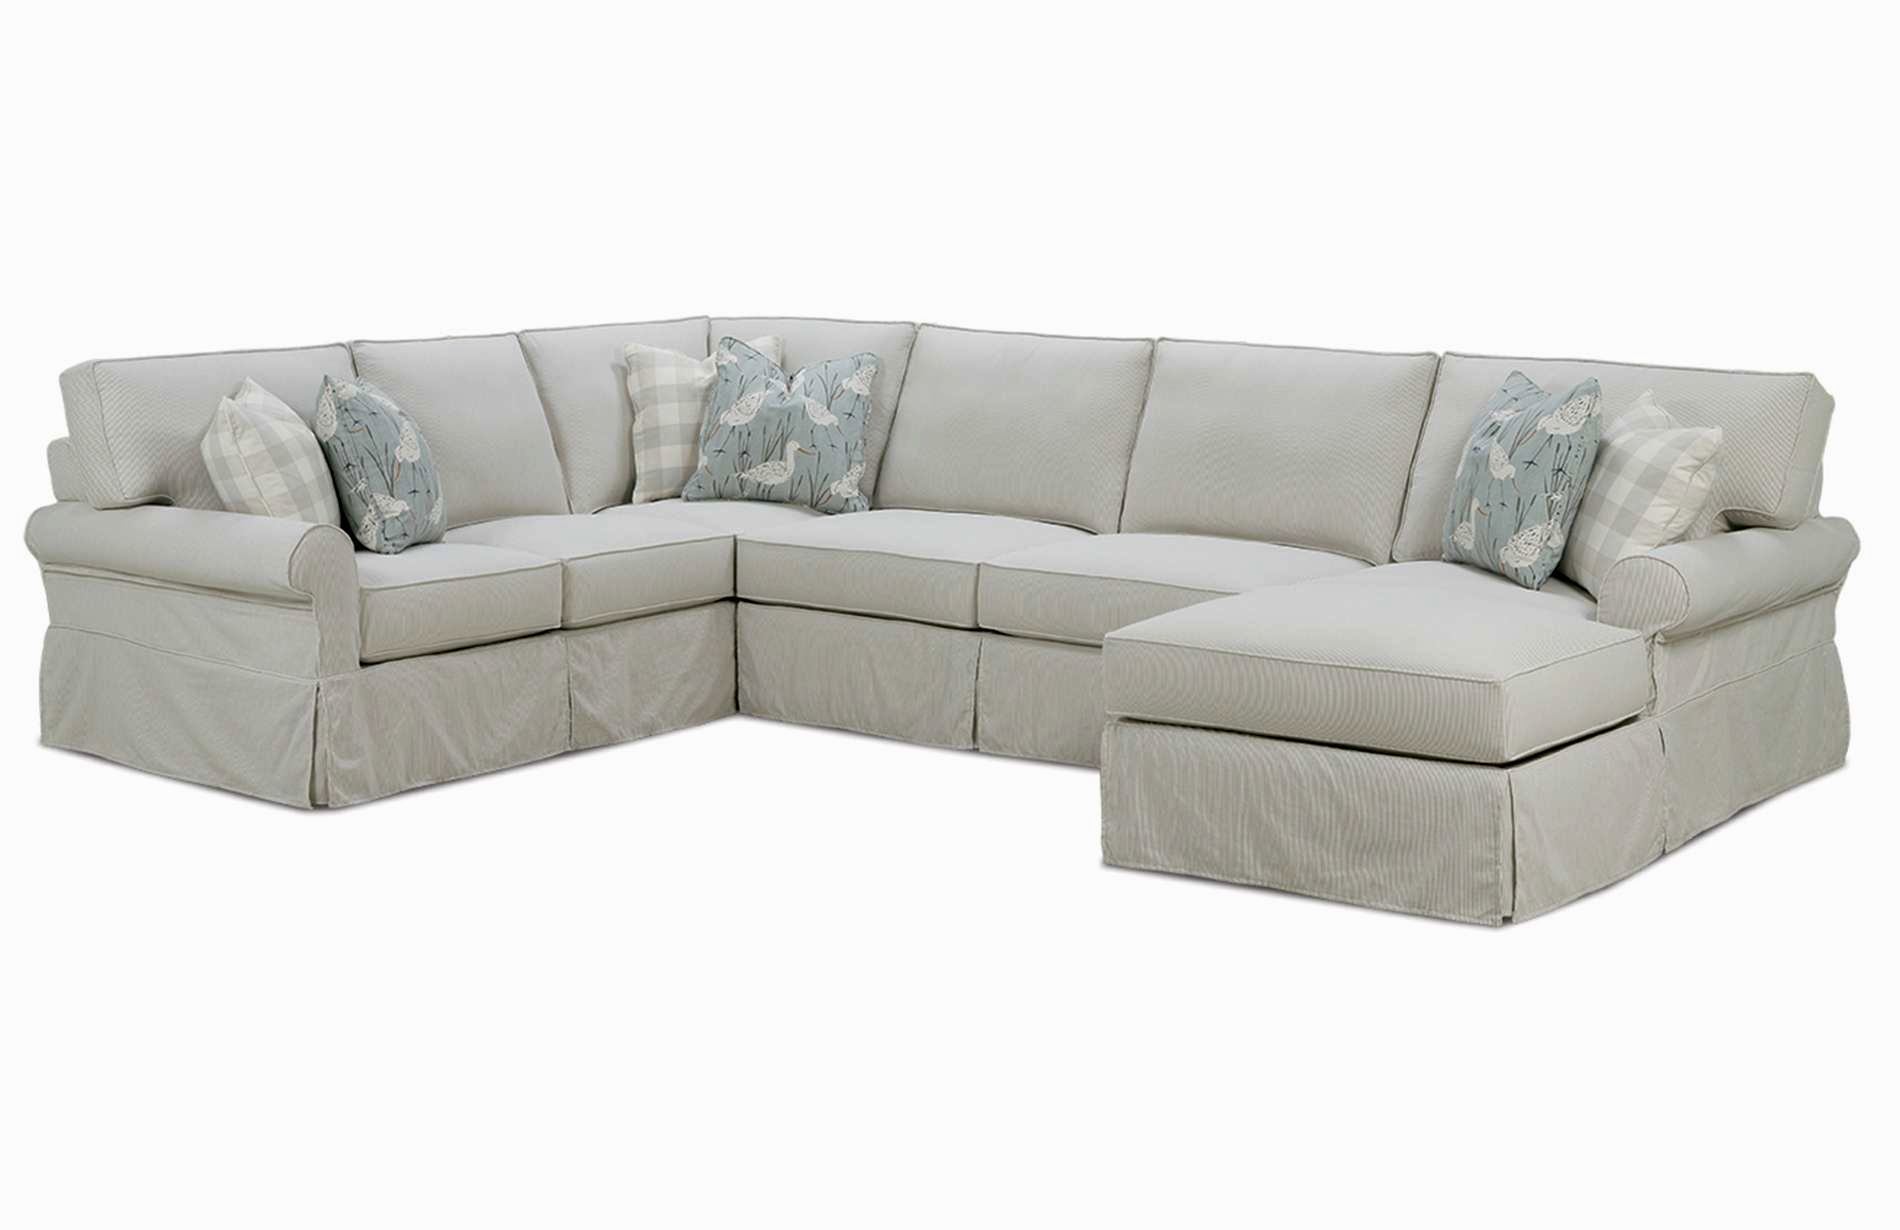 fresh sectional sofa with sleeper inspiration-Modern Sectional sofa with Sleeper Concept